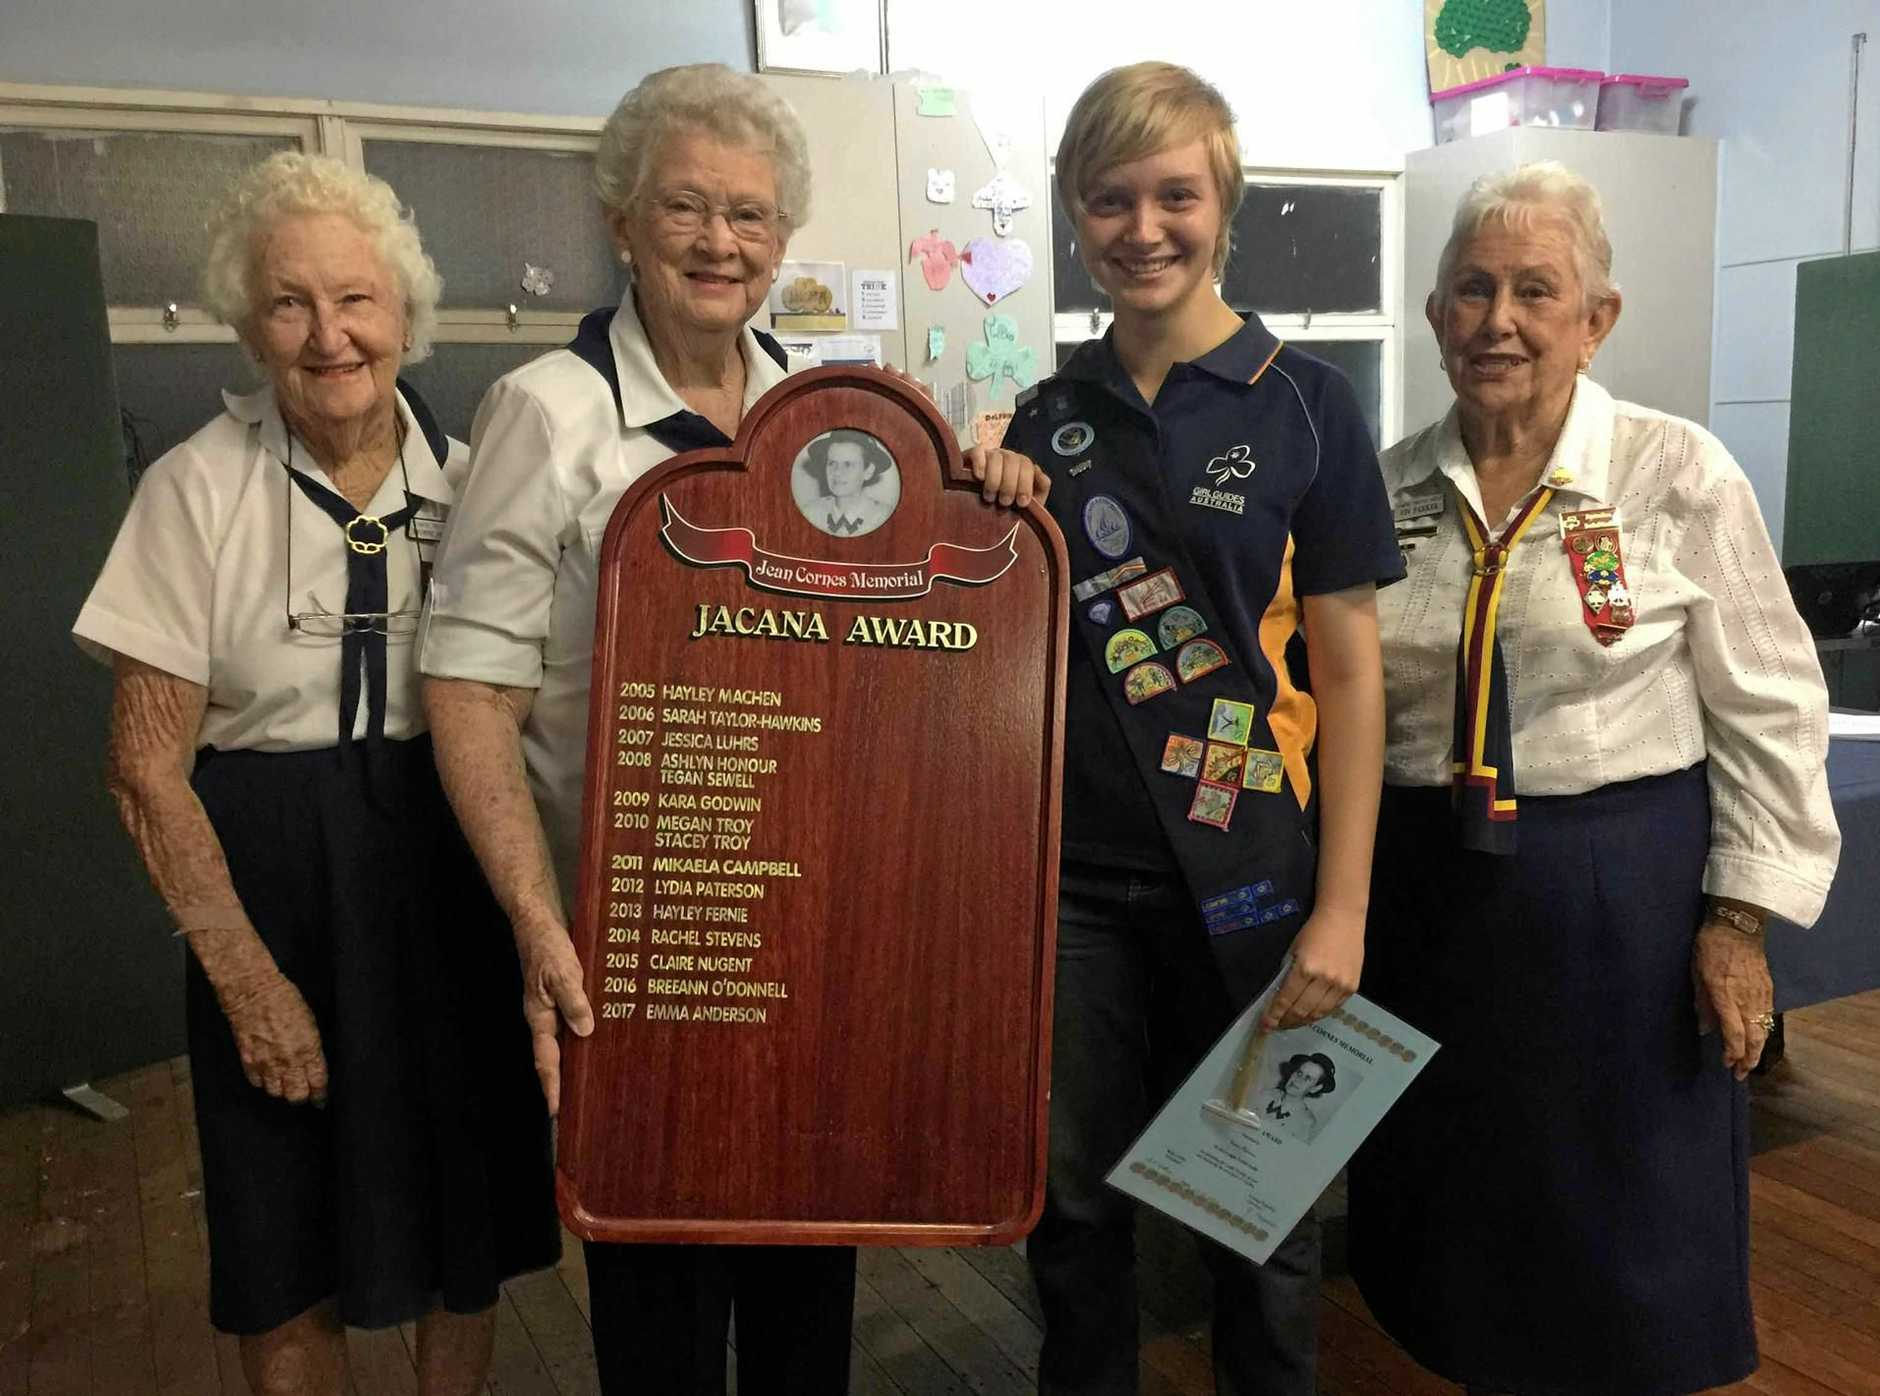 BIG HONOUR: Jacana Award winner Emma Anderson (second left) with Gympie Trefoil members (from left) Yvonne Nipperess, Betty Collins and Viv Parker.